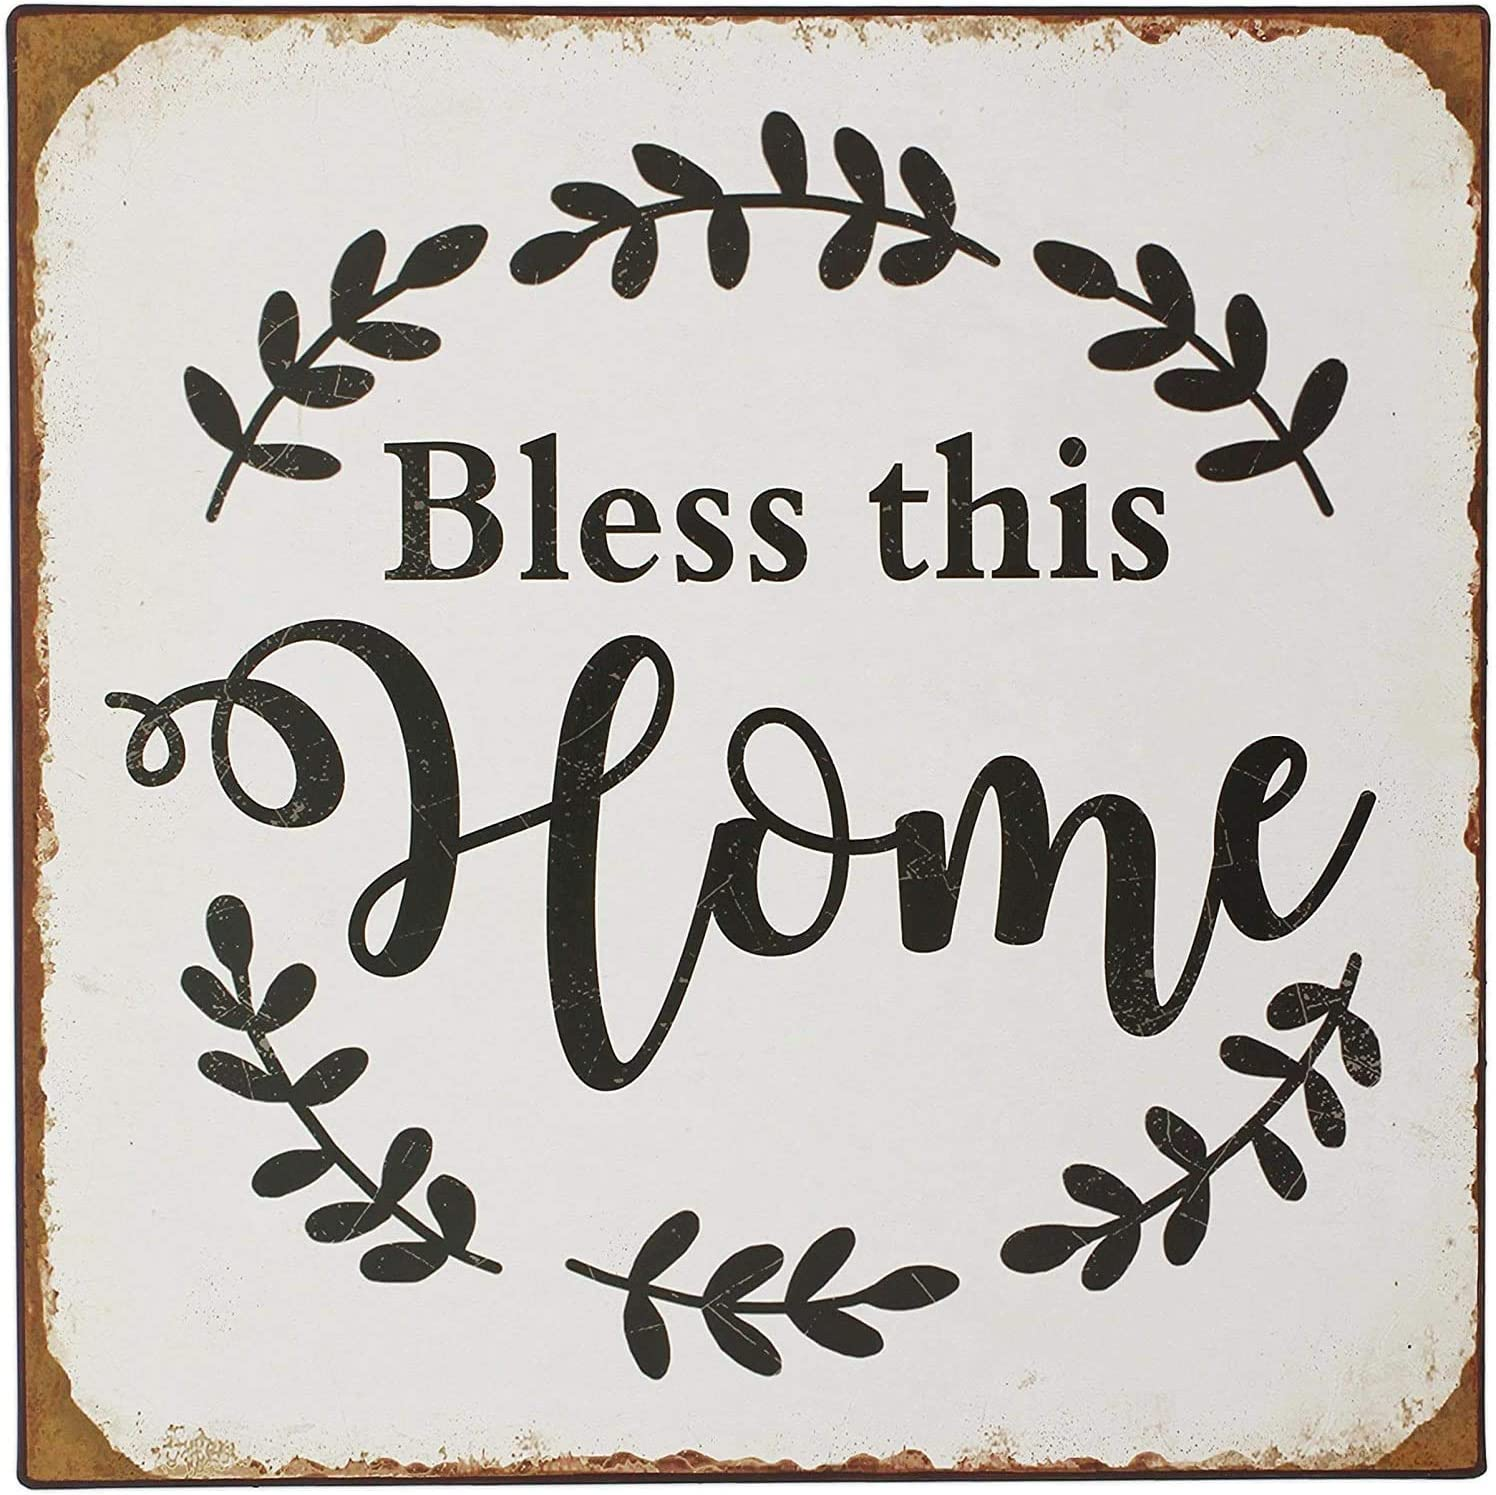 HAPPY DEALS ~ Bless This Home   Primitive Metal Rusty Tin Sign   12 inch   Farmhouse, Shabby Chic, Primitive Sign